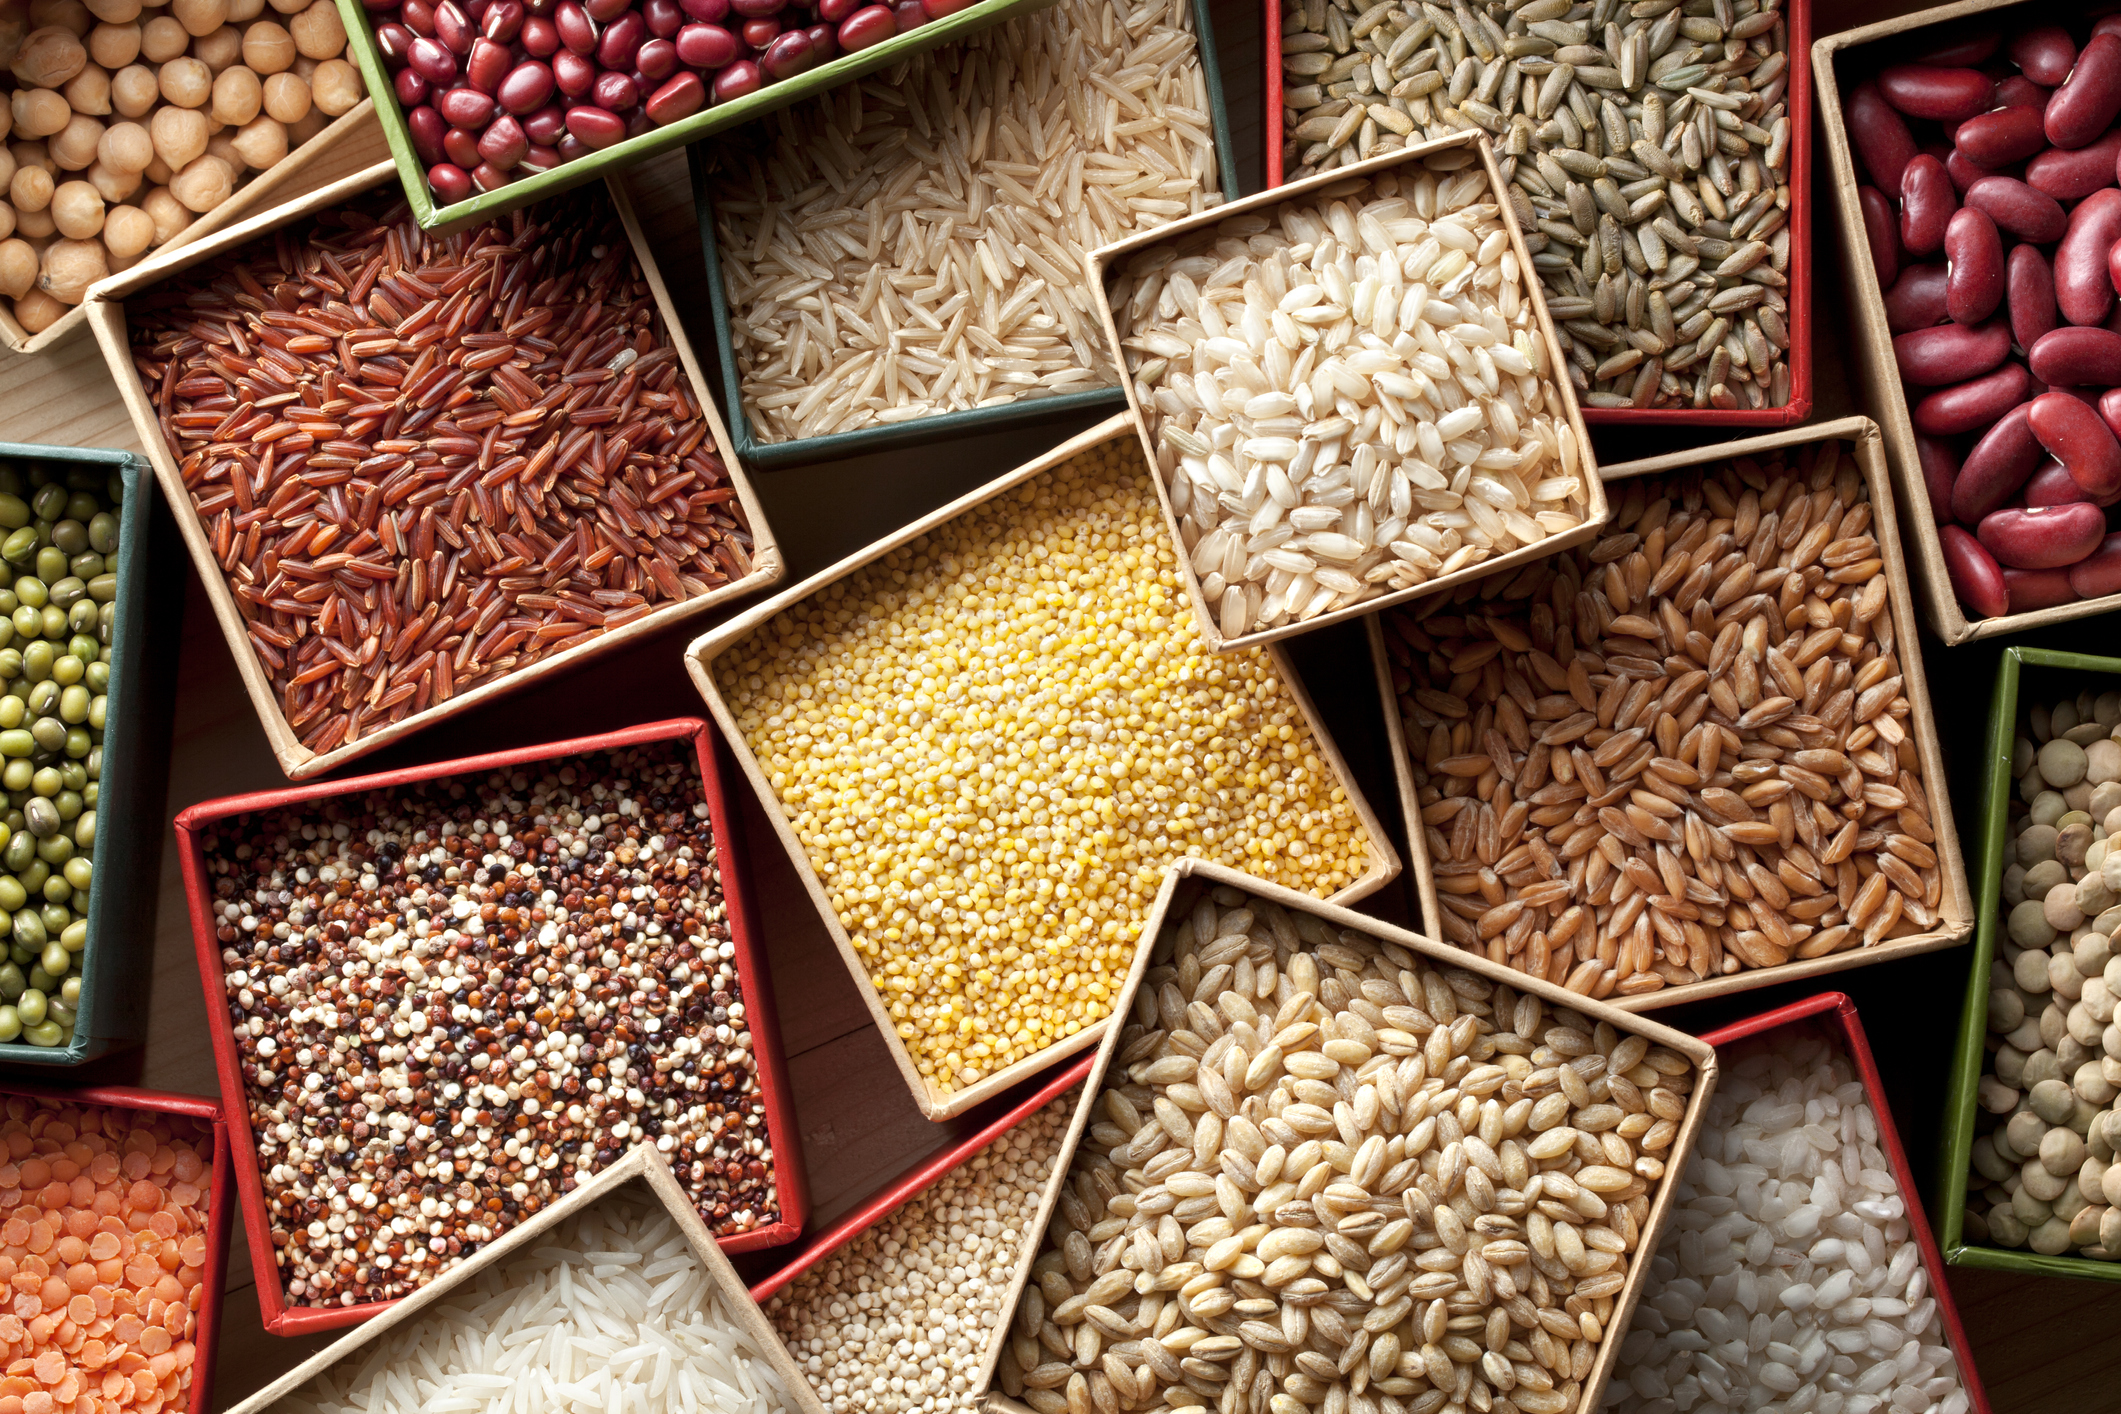 Varieties of grains seeds and beans